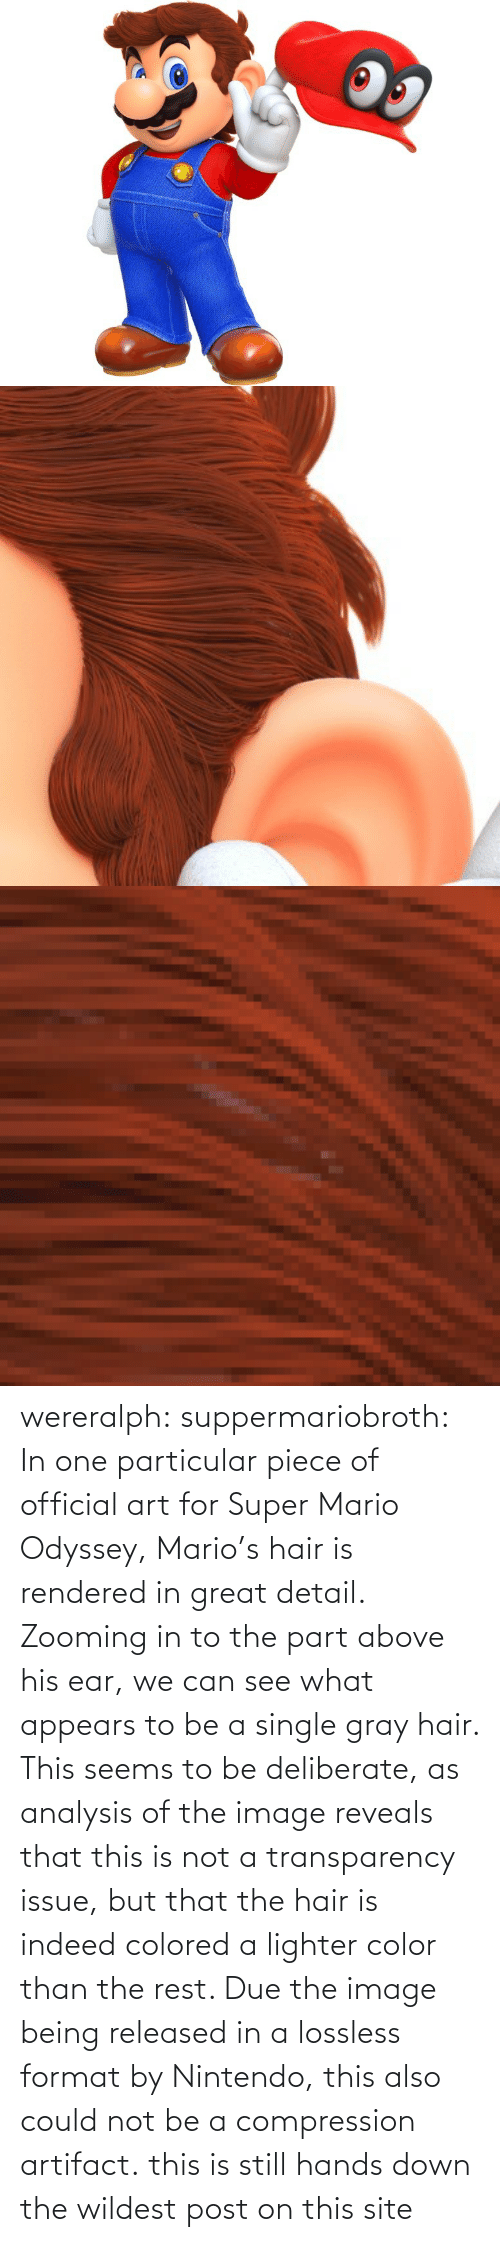 Hair: wereralph: suppermariobroth: In one particular piece of official art for Super Mario Odyssey, Mario's hair is rendered in great detail. Zooming in to the part above his ear, we can see what appears to be a single gray hair. This seems to be deliberate, as analysis of the image reveals that this is not a transparency issue, but that the hair is indeed colored a lighter color than the rest. Due the image being released in a lossless format by Nintendo, this also could not be a compression artifact. this is still hands down the wildest post on this site